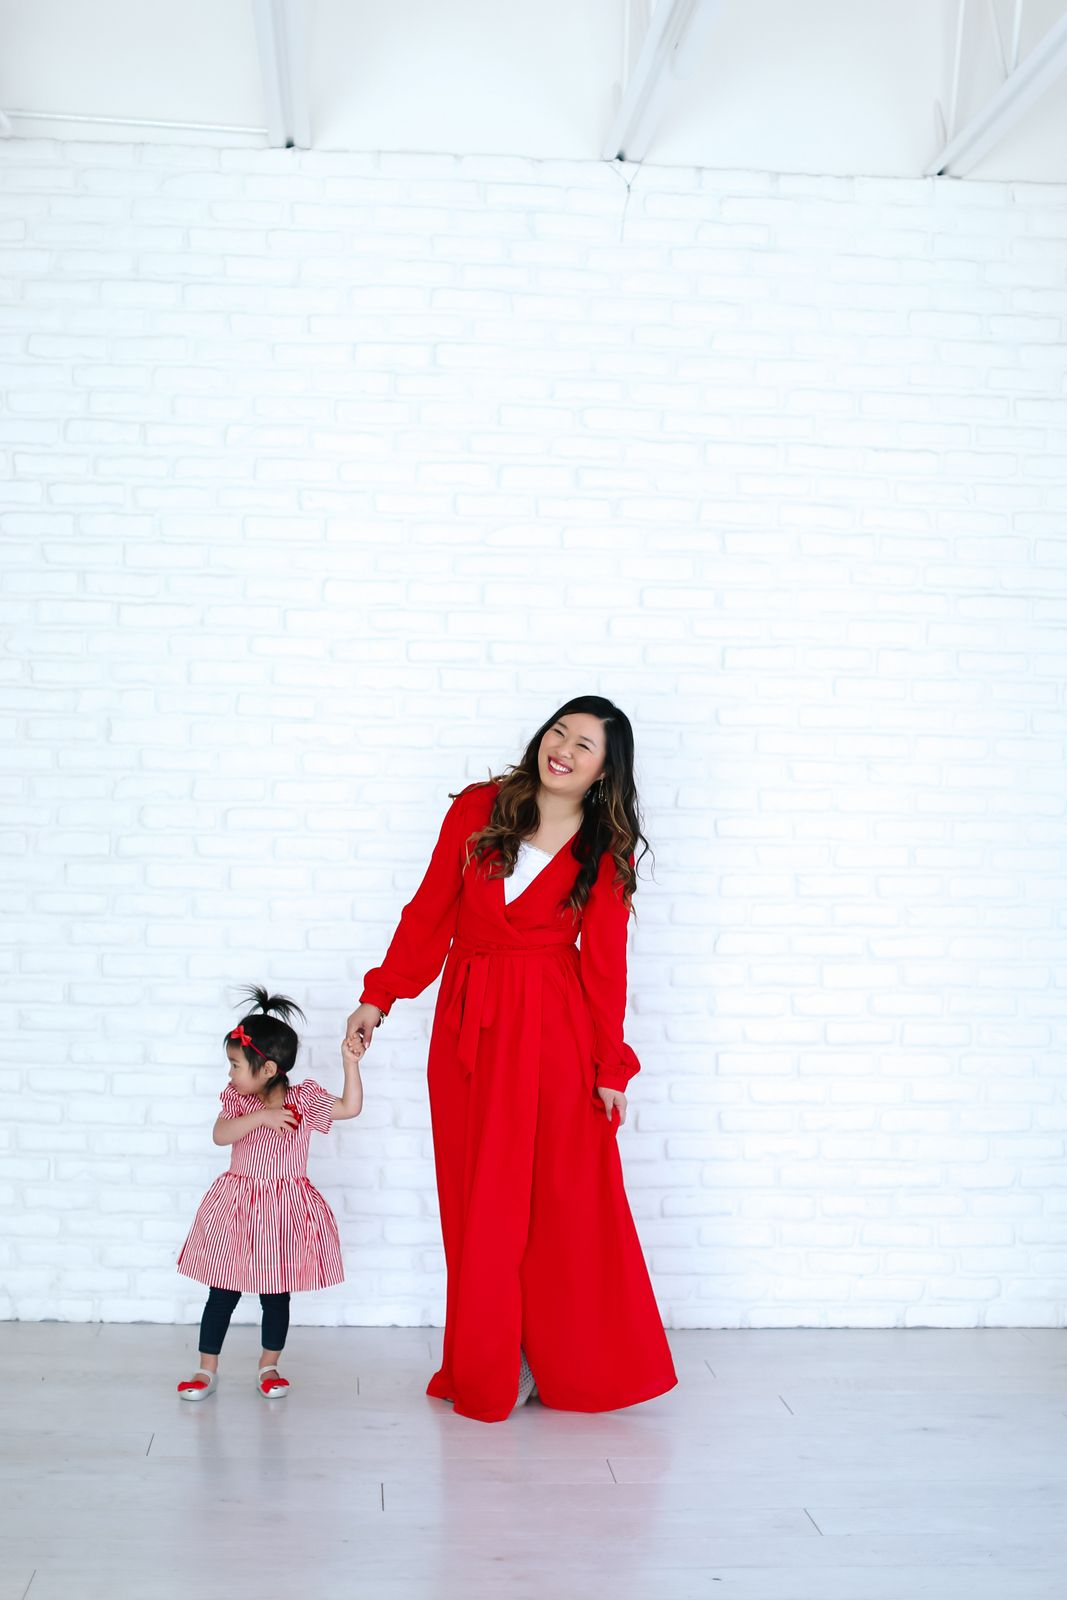 Mommy and Me Valentine's Outfit | mommy + me outfit ideas | mommy and me fashion | fashion tips for moms and daughters | how to style a mommy and me outfit | mommy and me style ideas || Sandy a la Mode